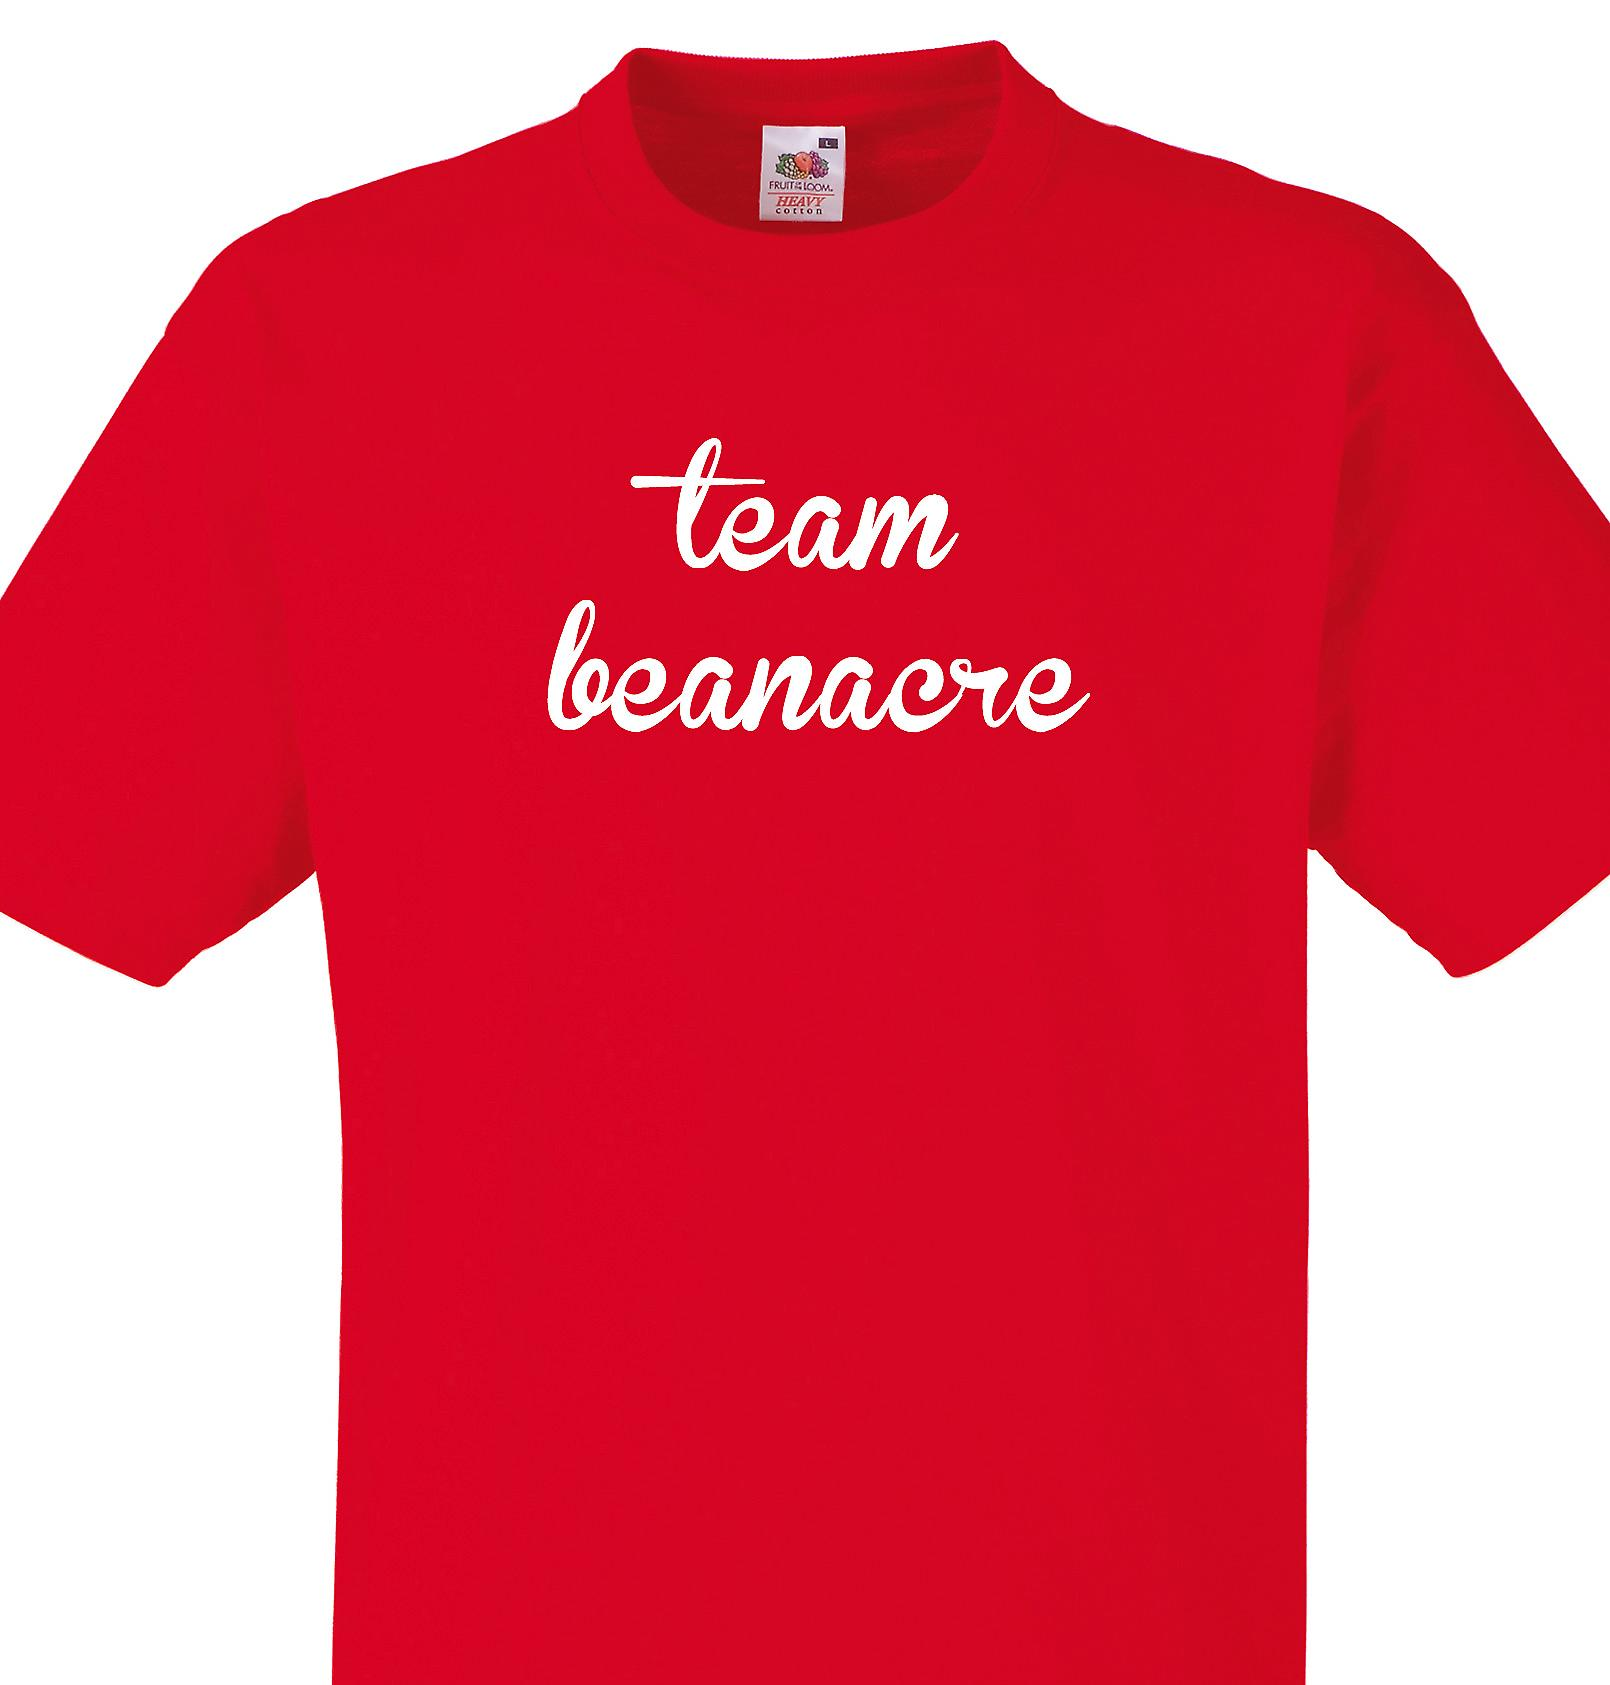 Team Beanacre Red T shirt